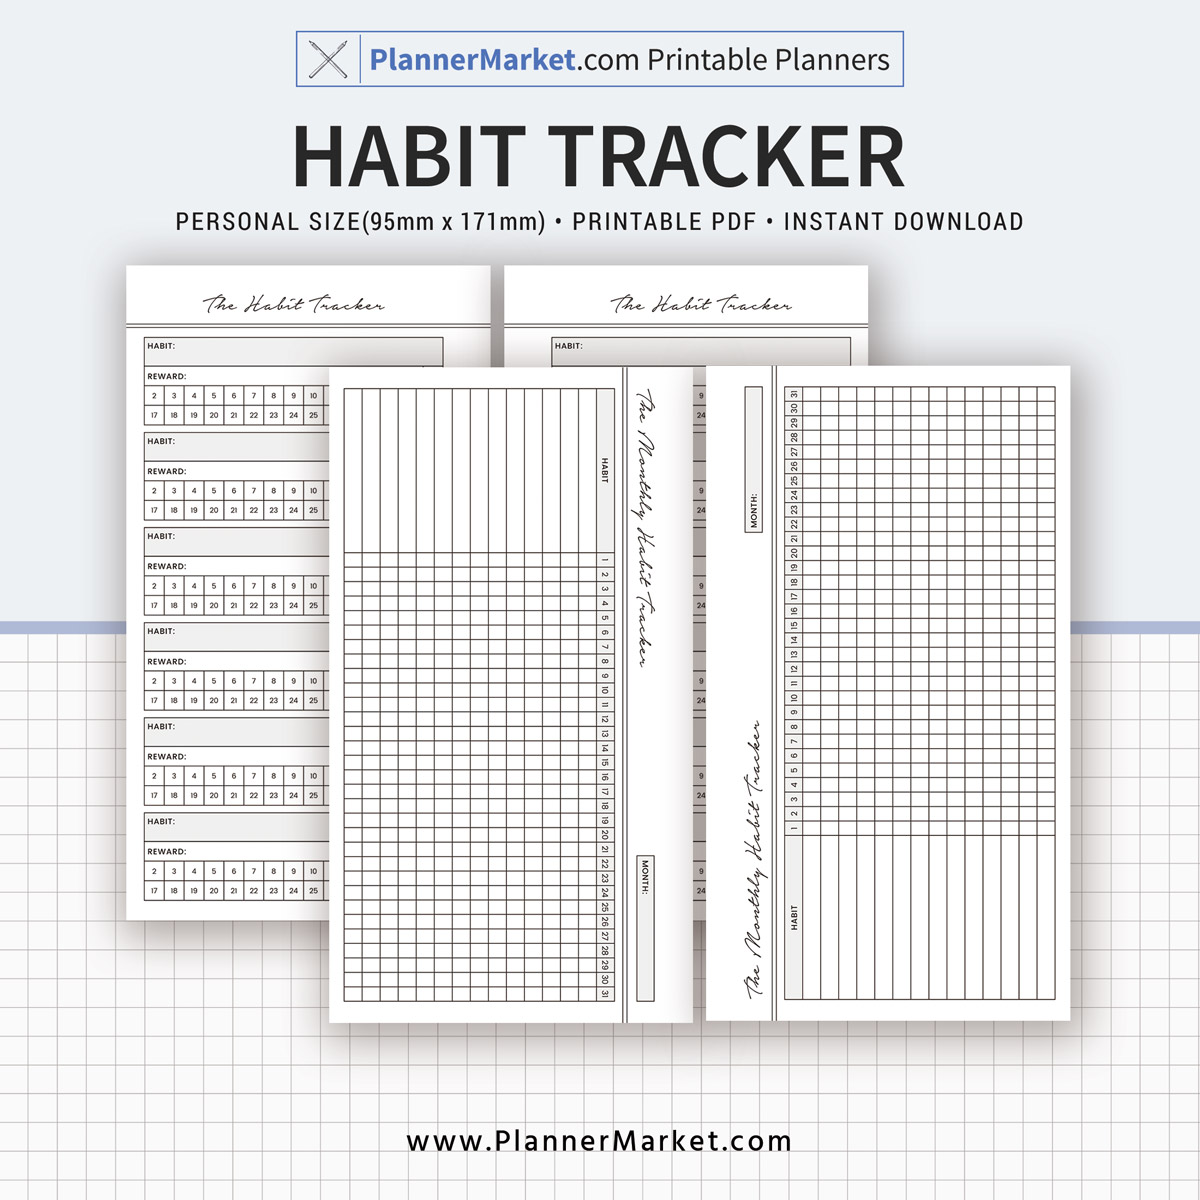 photograph regarding Habit Tracker Printable titled Practice Tracker, Every month Behavior Tracker, 2019 Planner, Person Sizing Inserts, Planner Refill, Printable PDF, Prompt Down load